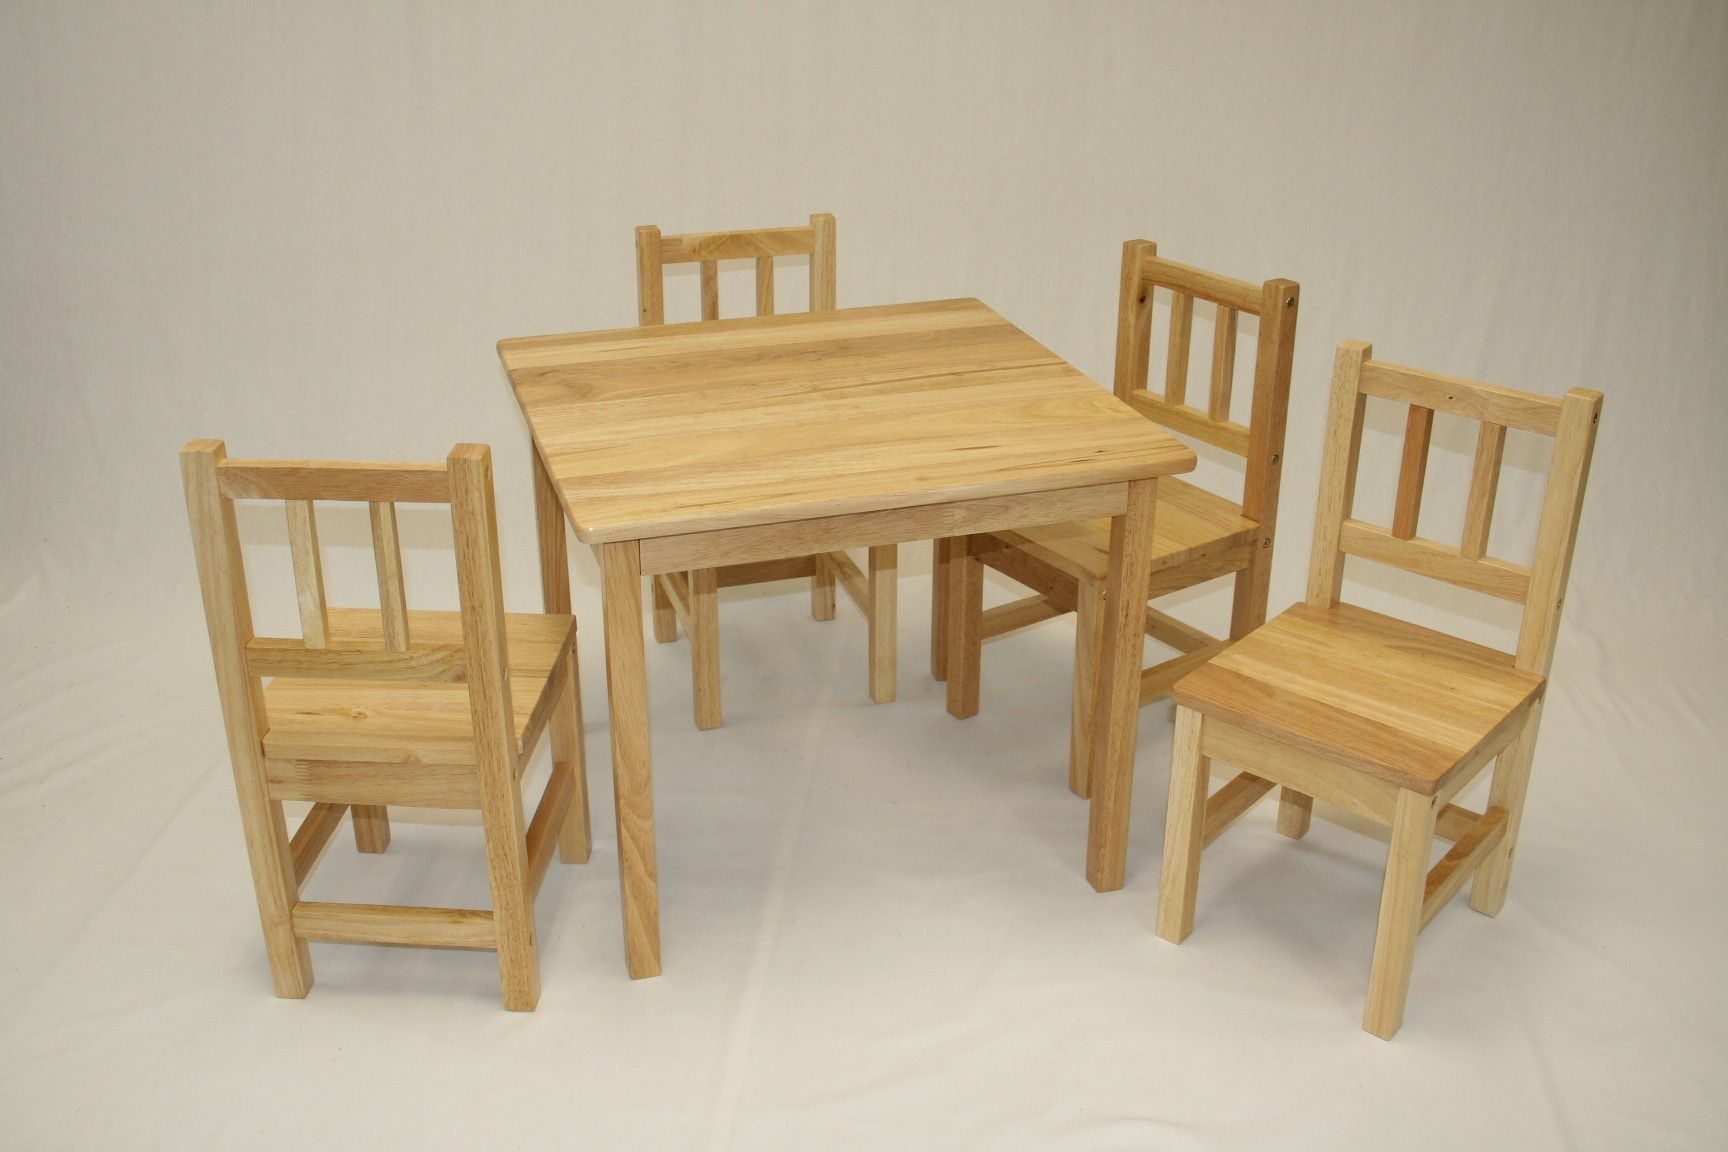 Childrens Wooden Table And Chairs Kids 5 Piece Table And Chair Set Tables Wooden Table Chairs